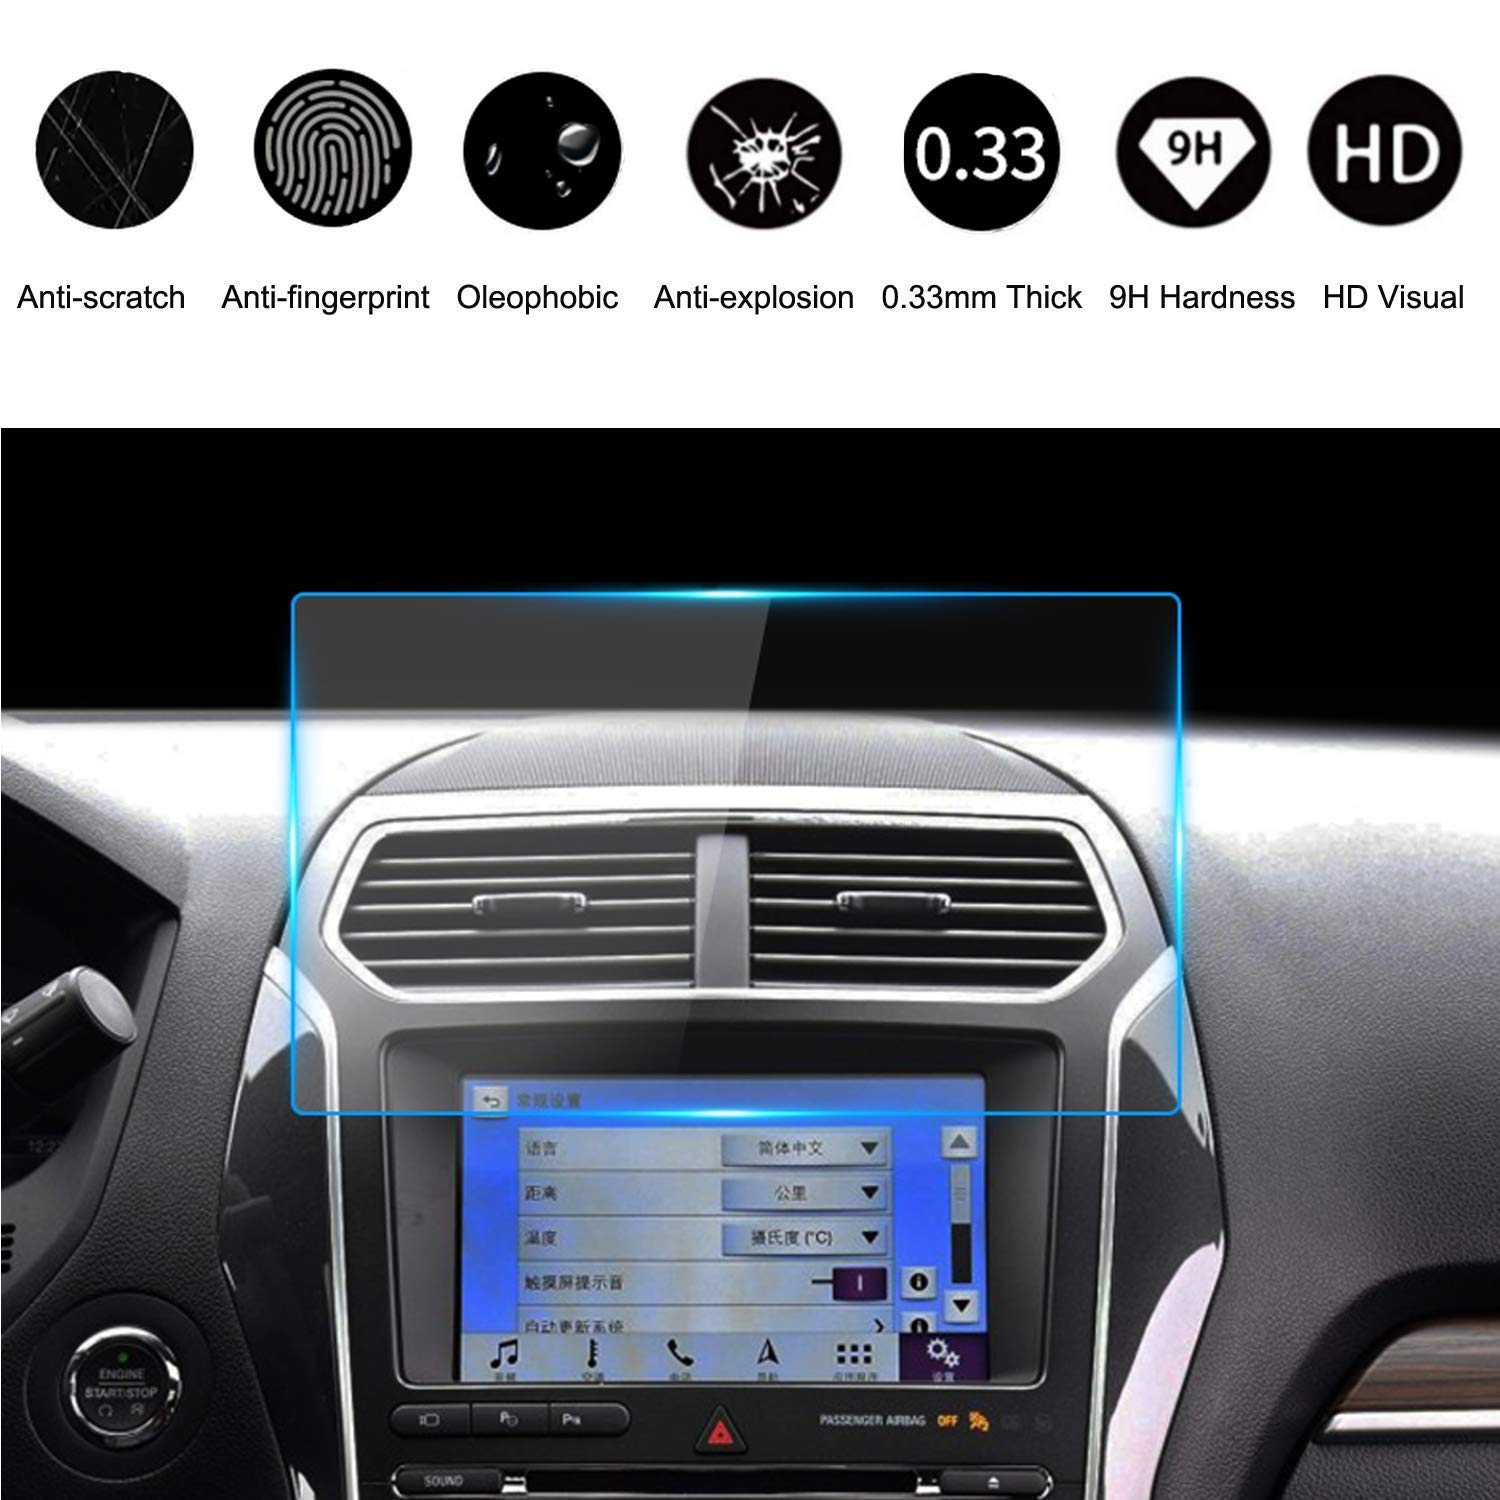 9H Ford Tempered Glass Screen Protector 8 Inch, HeyMoly Car Navigation Clear Touch Display Film Protector, 2013-2019 F-150 F250 F350 F450 Sync2 Sync3 Escape Expedition Everest EcoSport Fusion Focus RS by HeyMoly